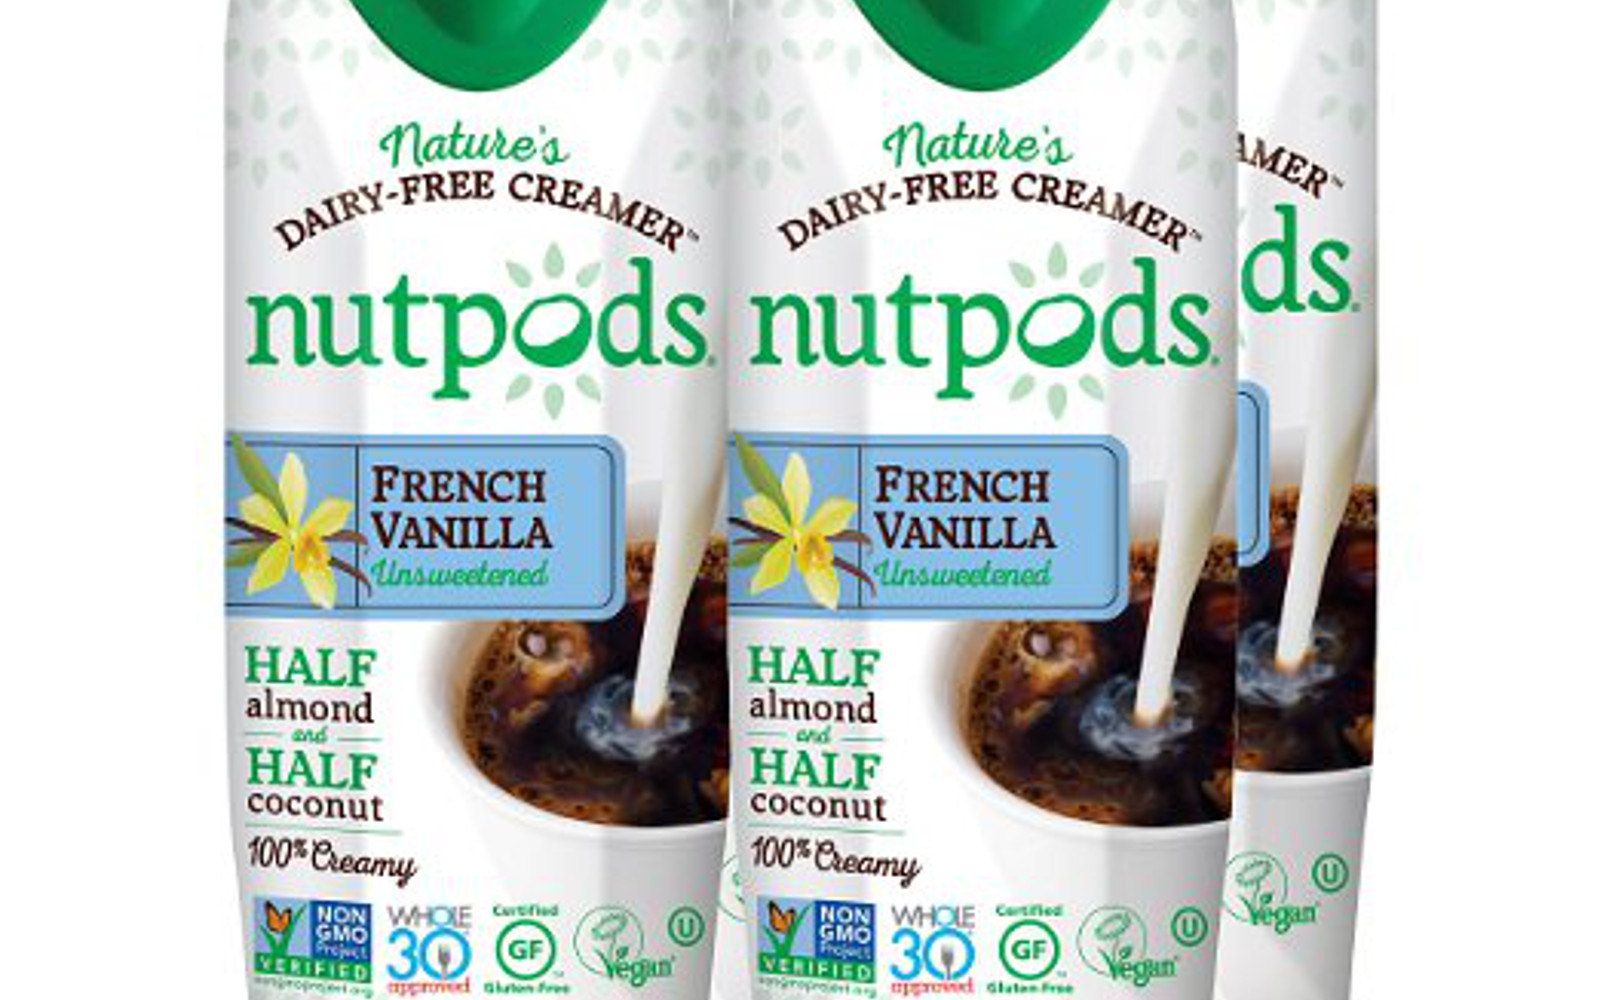 nutpods Dairy-Free Creamer Unsweetened (French Vanilla, 4-pack) - Whole30 Approve